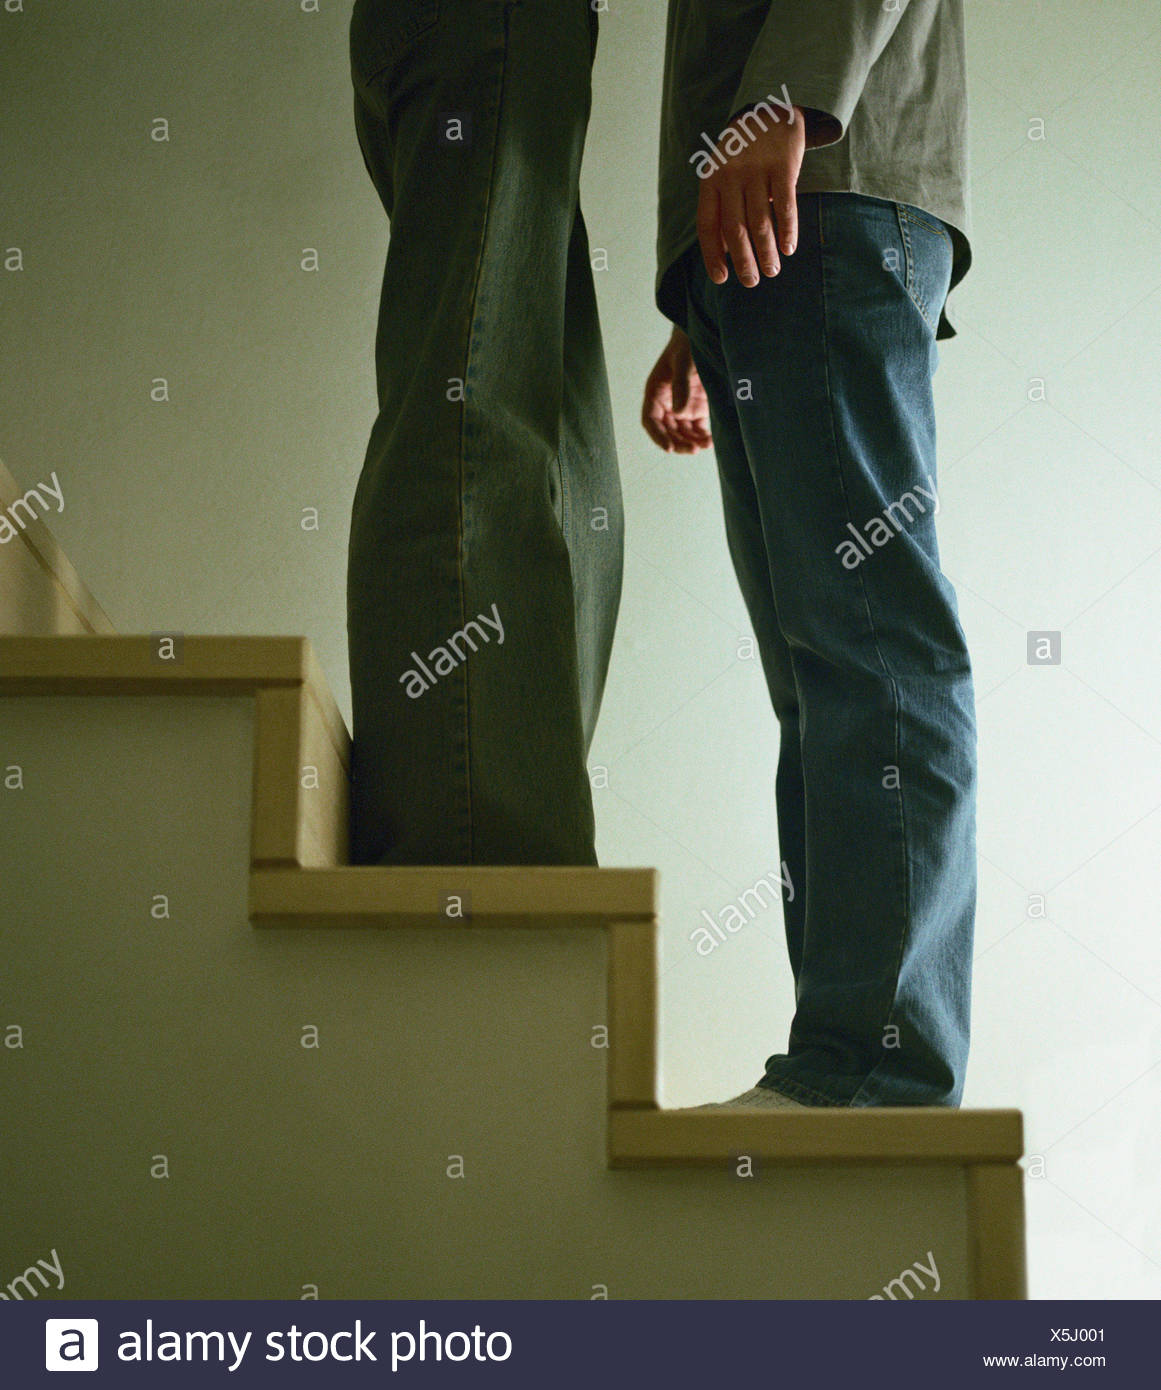 Couple on stairs, lower section - Stock Image